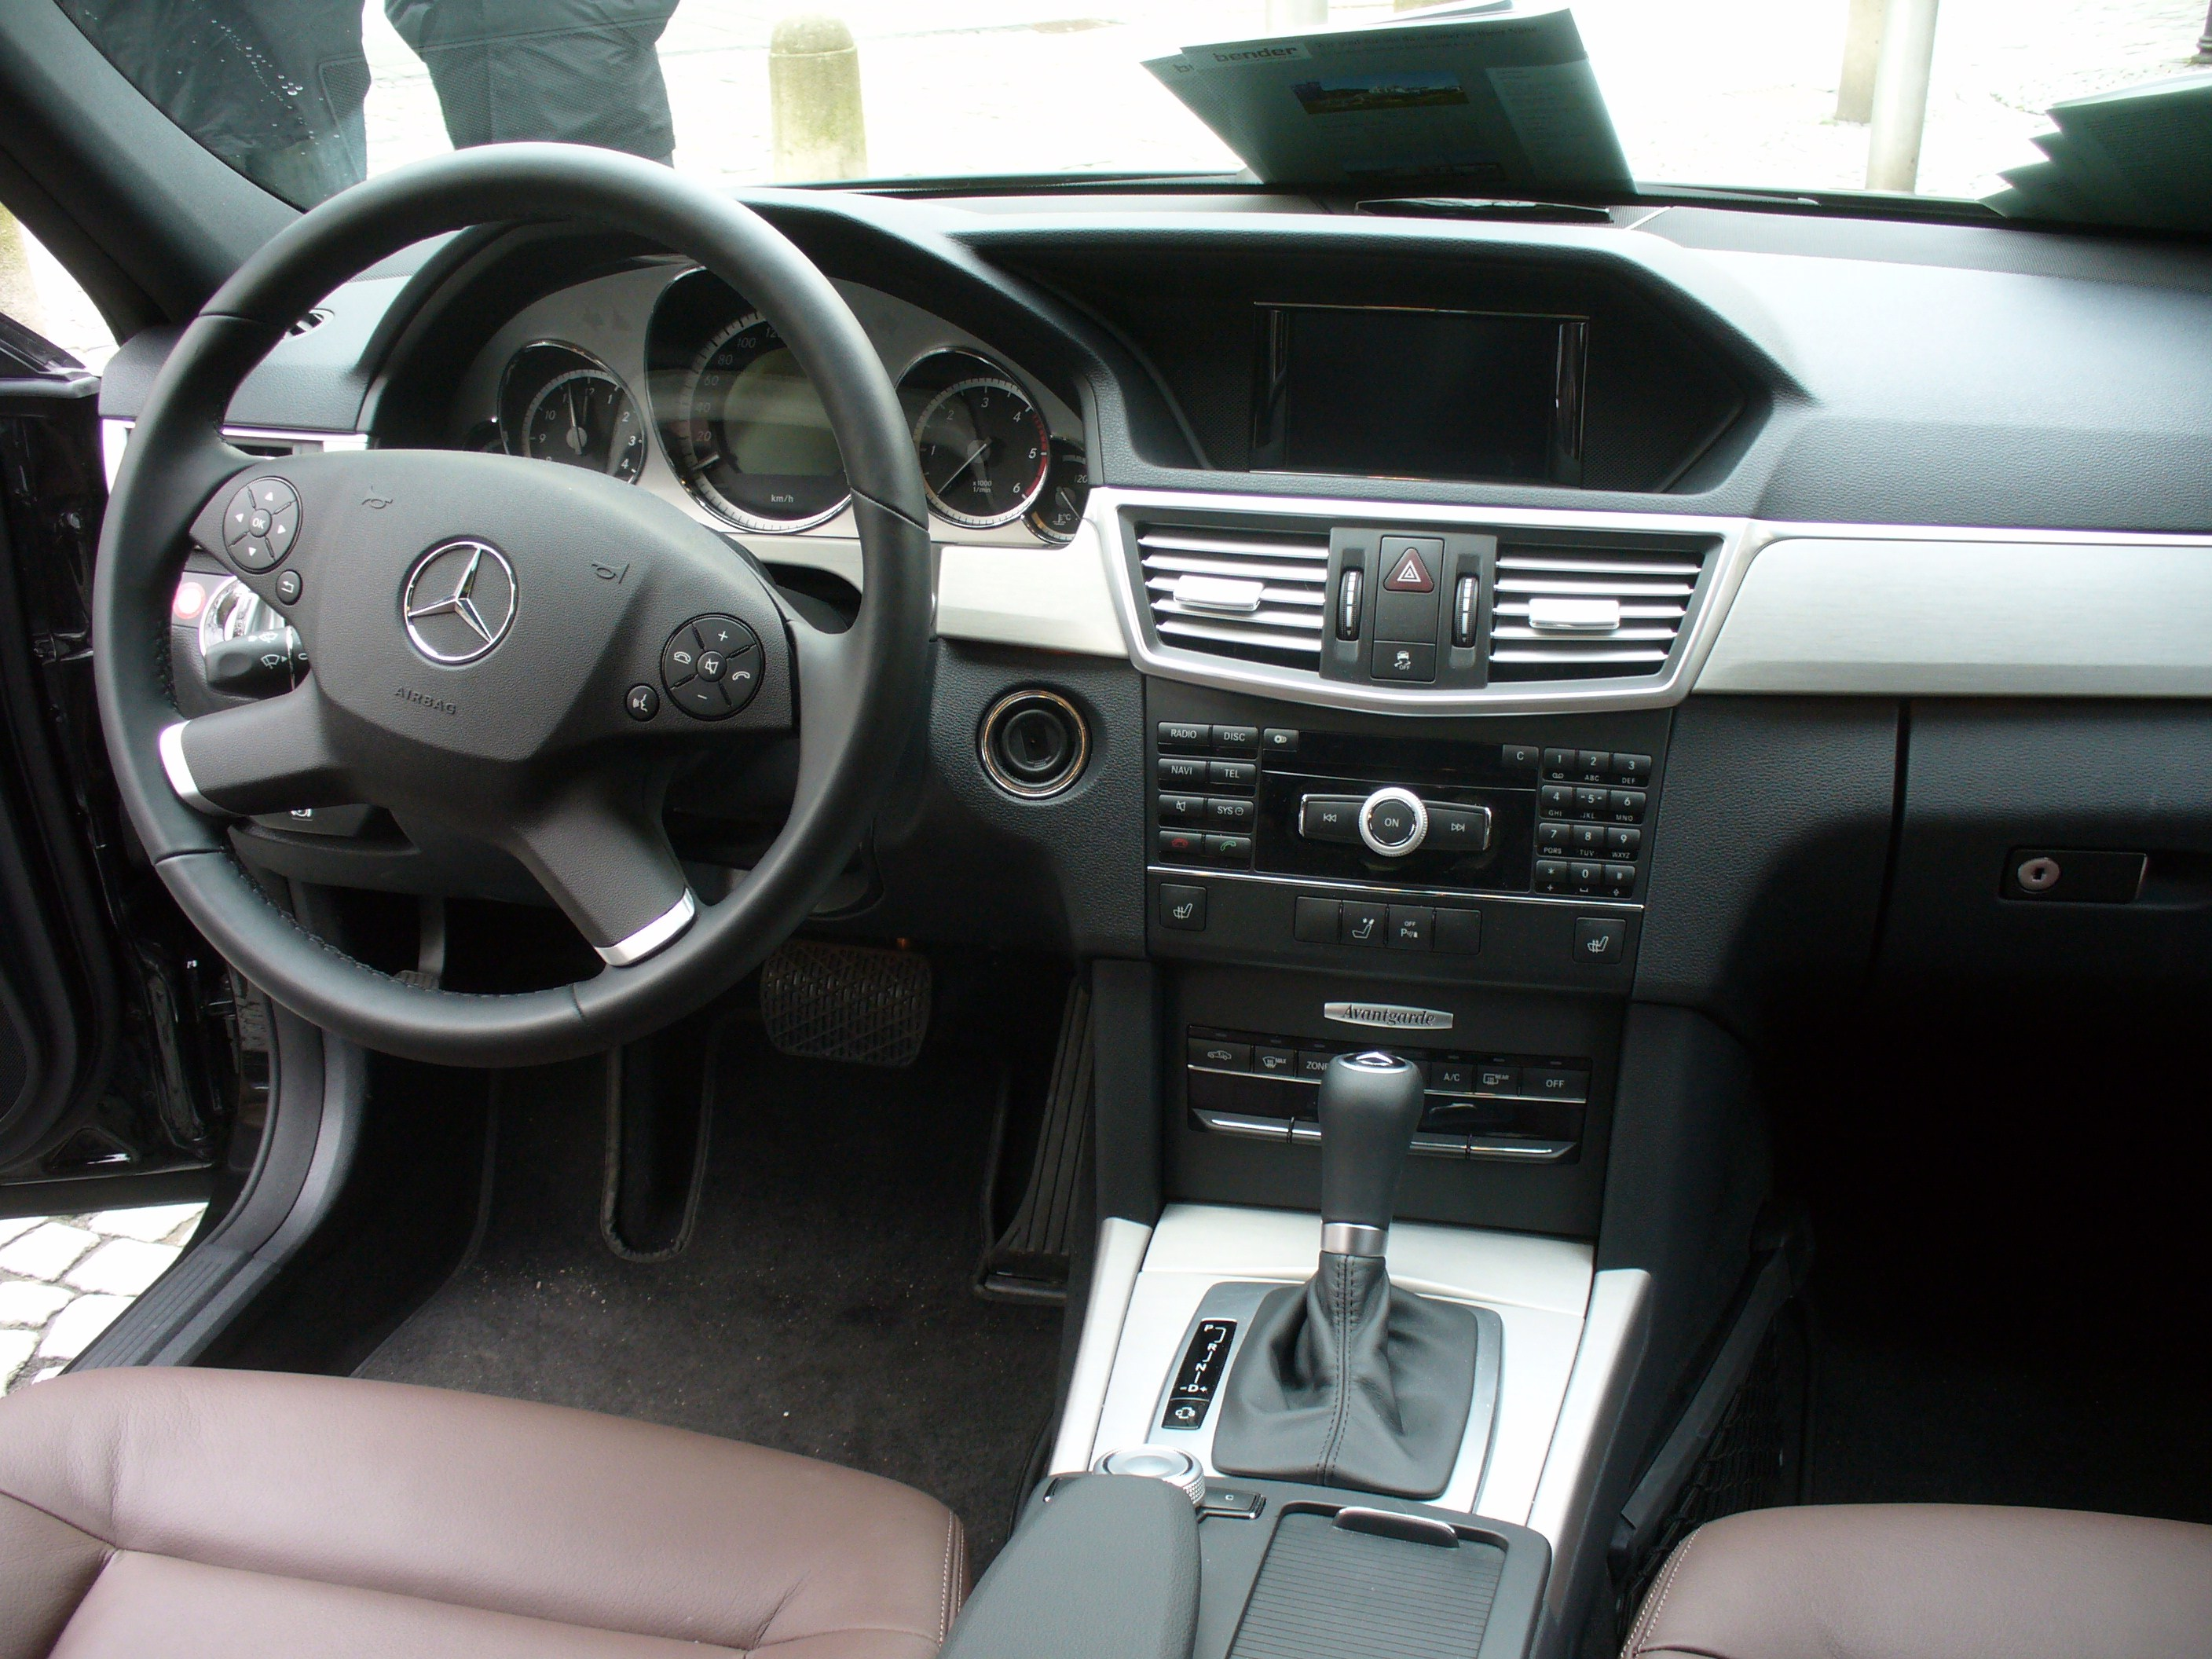 Mercedes benz w207 for Interieur e klasse